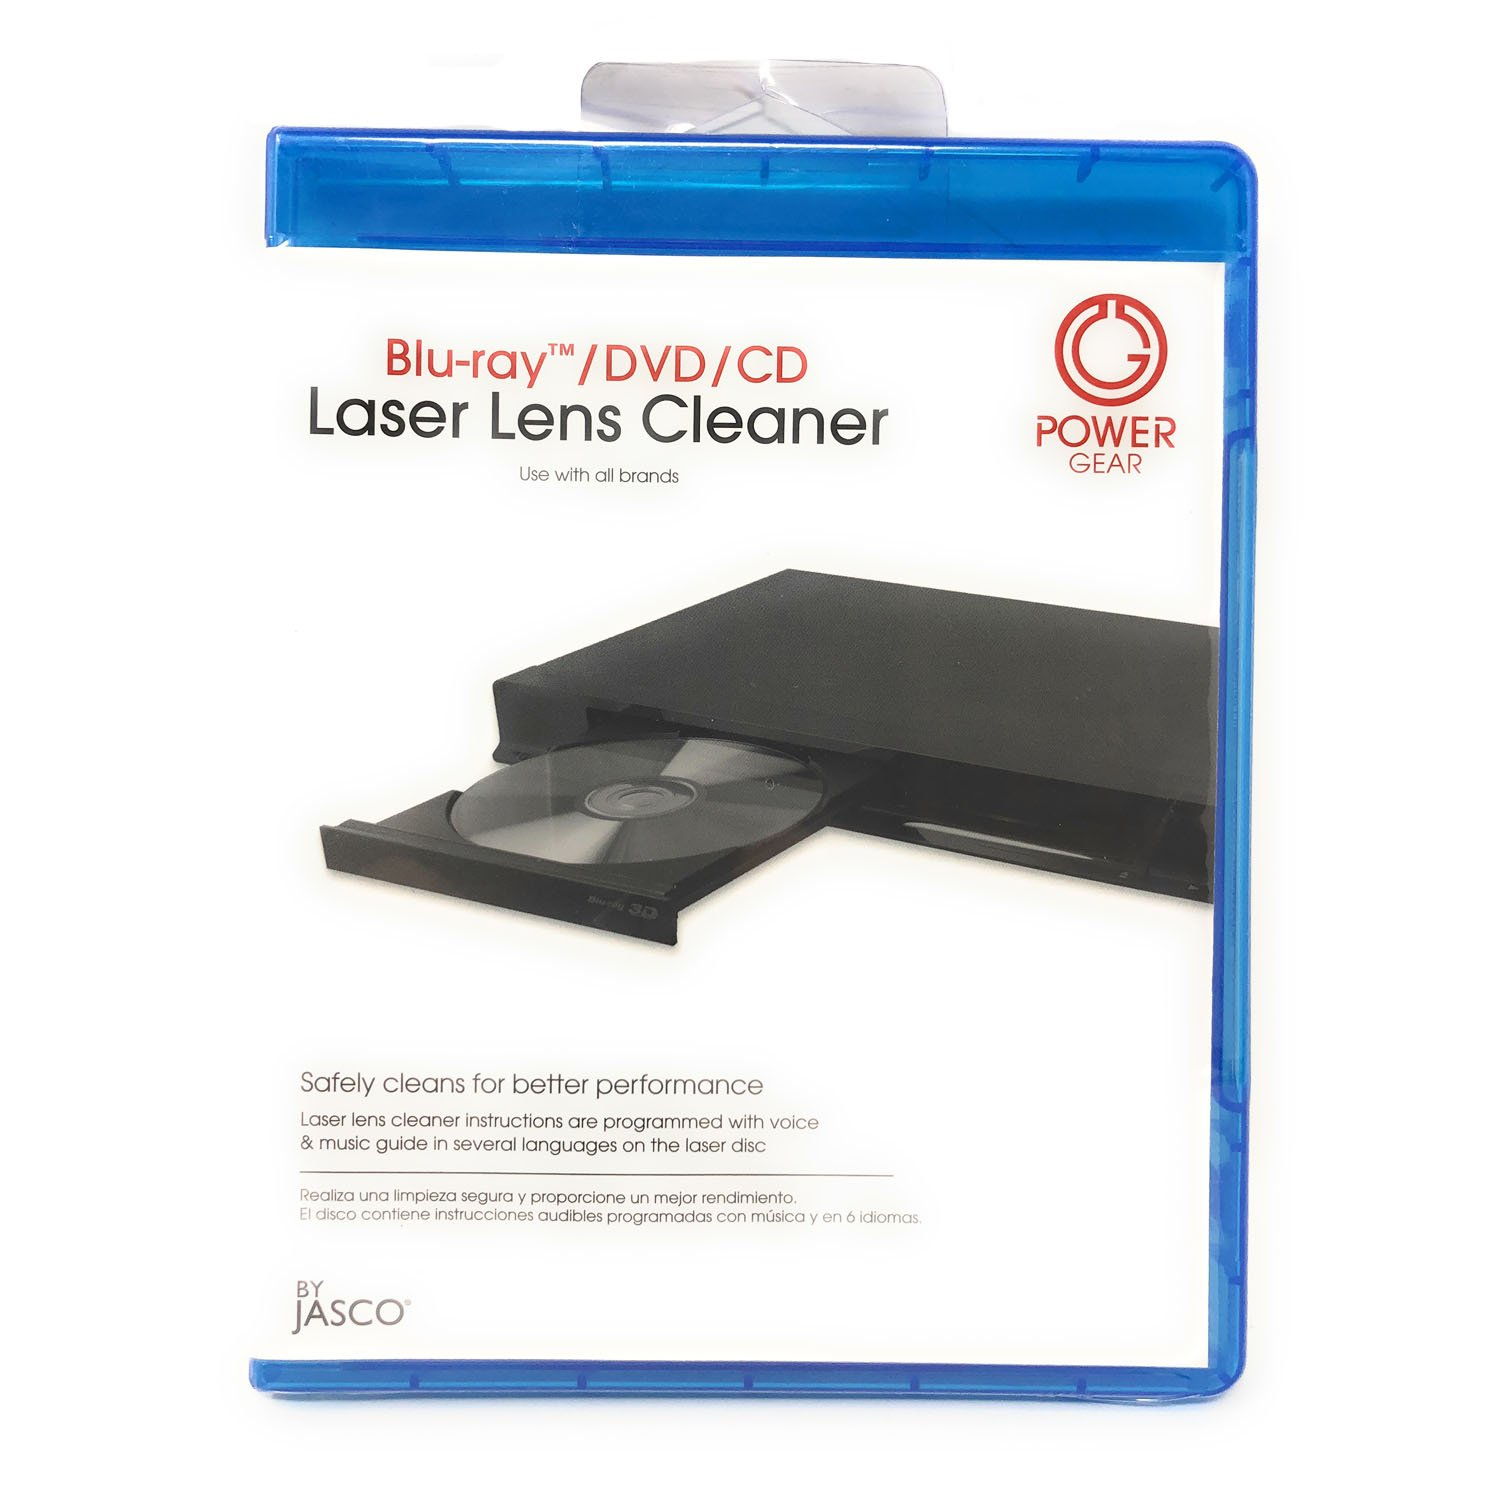 Bluray DVD CD Laser Lens Cleaner with Voice Instructions 6 Different Languages by Power Gear Lens Cleaner